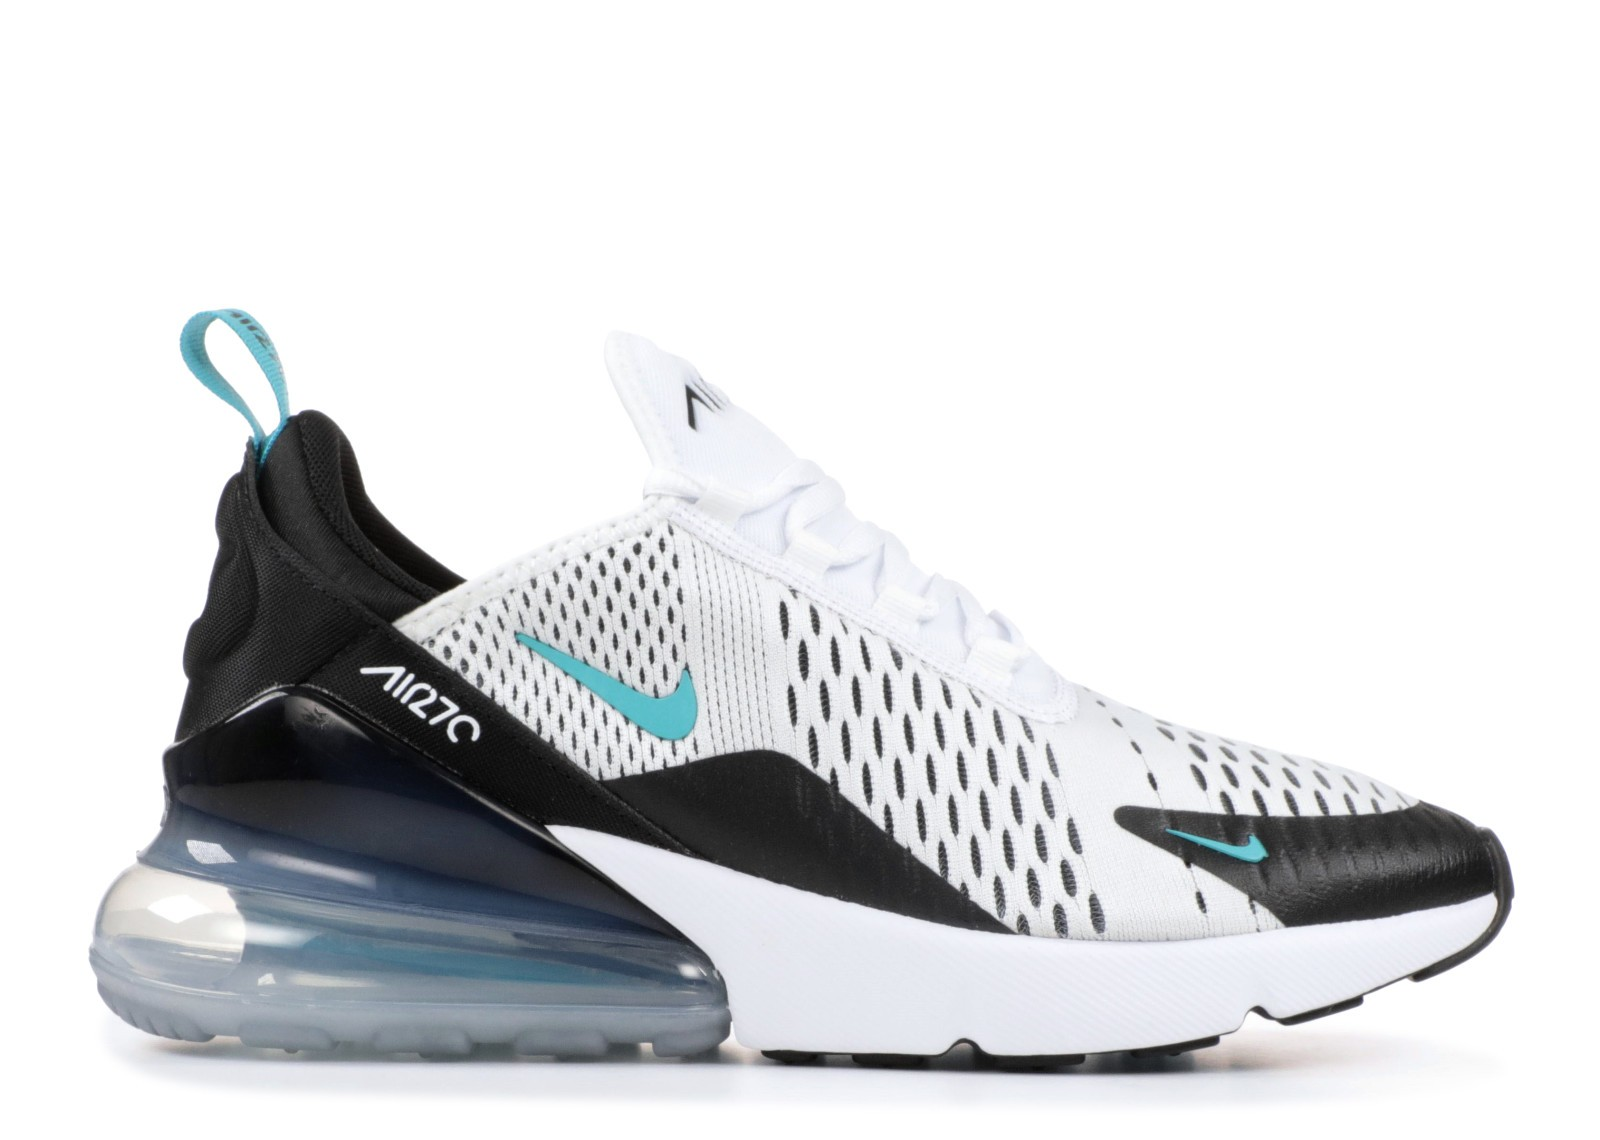 Nike Air Max 270 GS Blanche/Dusty Cactus - 943345-101